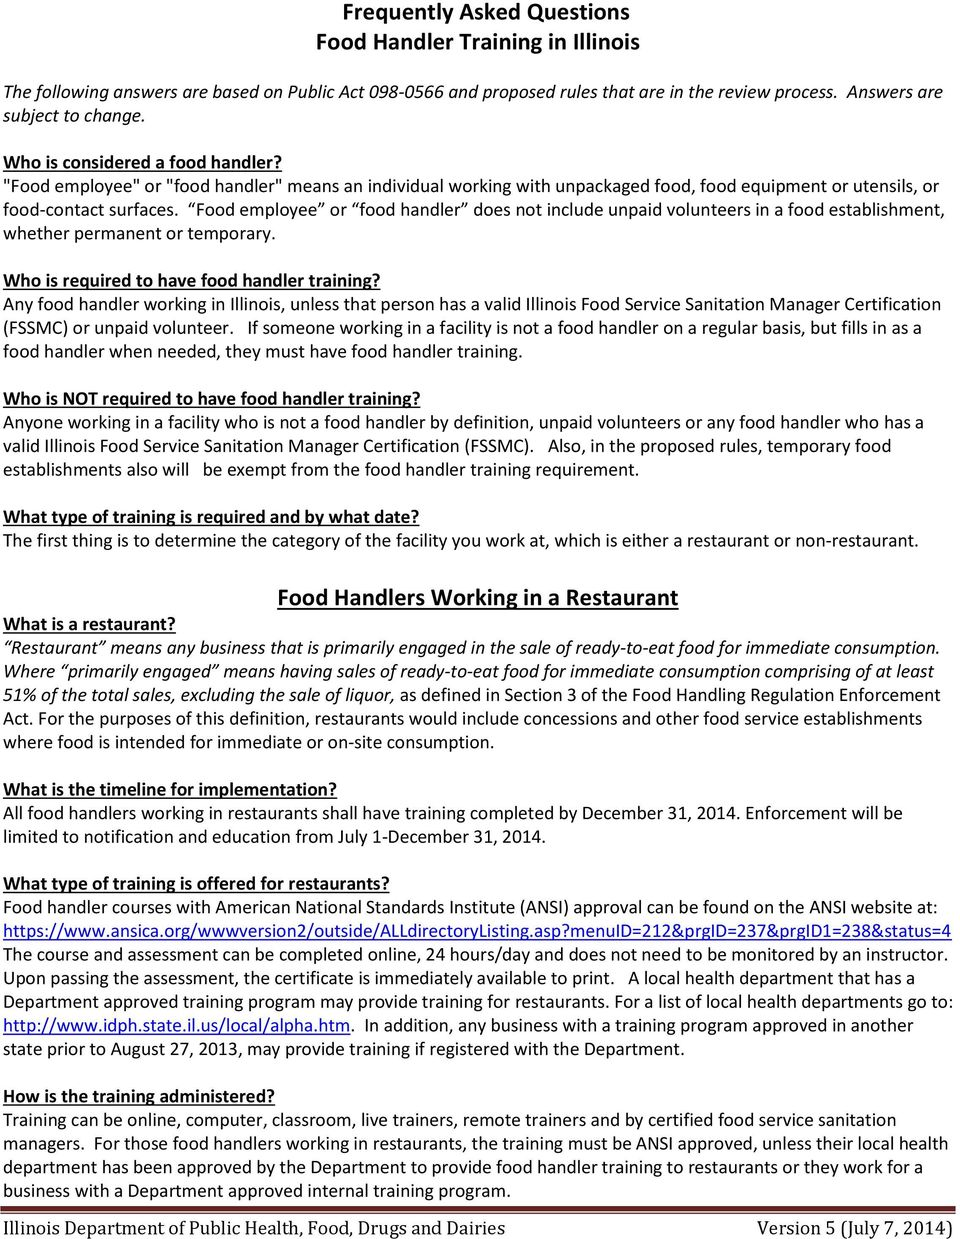 Frequently Asked Questions Food Handler Training In Illinois Pdf